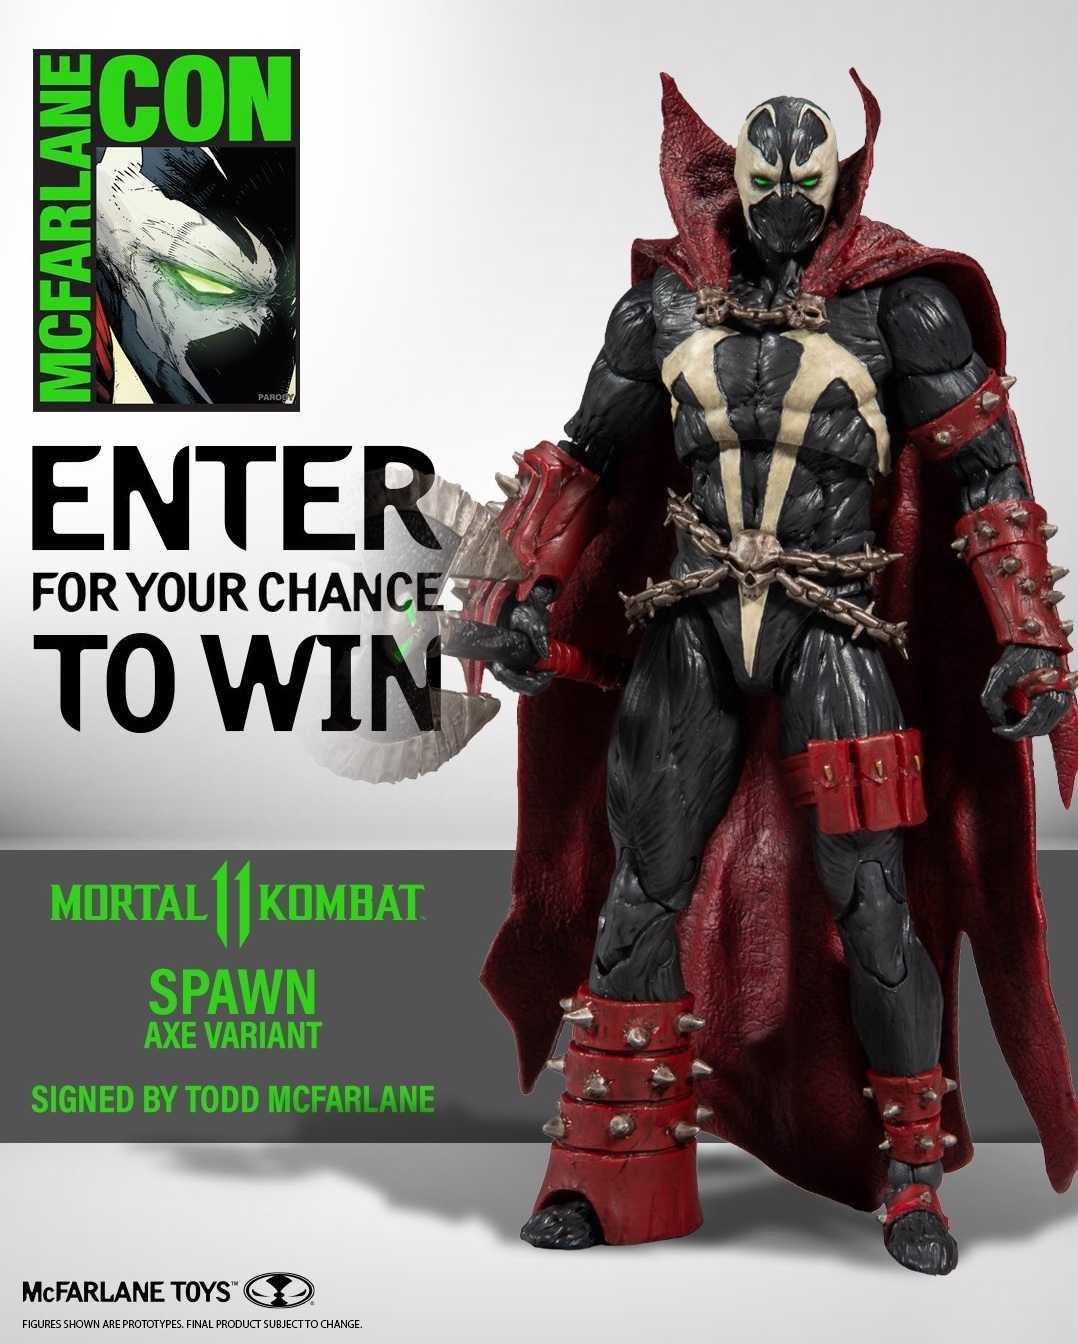 Mortal kombat 11 Spawn Action Figure by Mcfarlane Toys